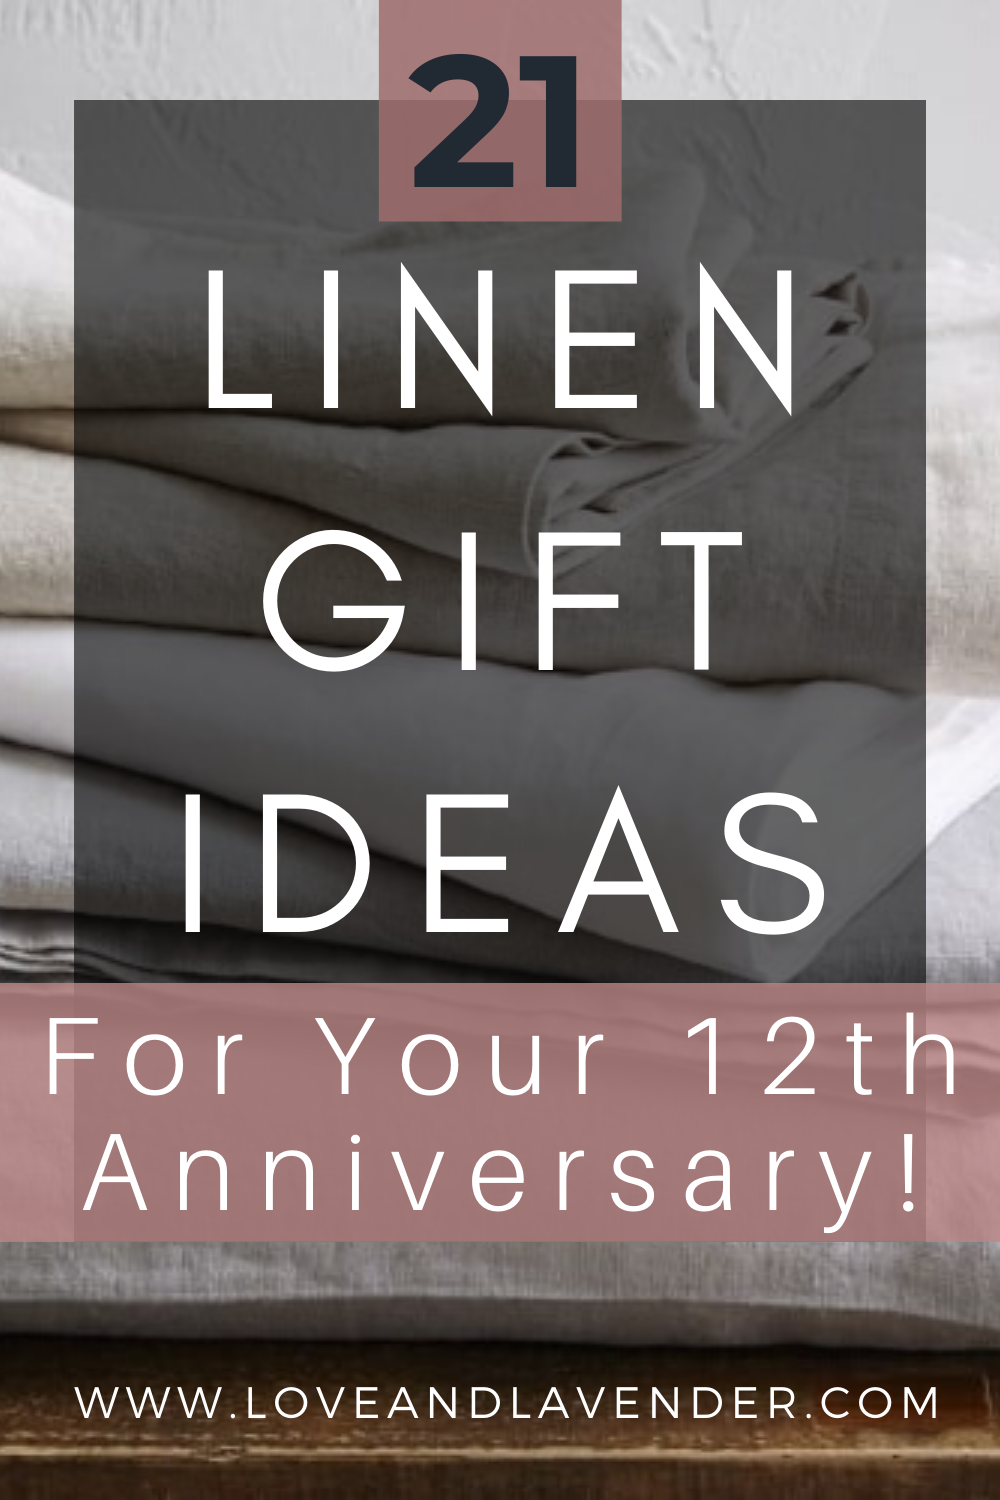 Linen Gift Ideas For Your 12th Anniversary 12th Anniversary Gift Ideas Linen 12 Year Anniversary Gifts 12th Anniversary Gifts Year Anniversary Gifts